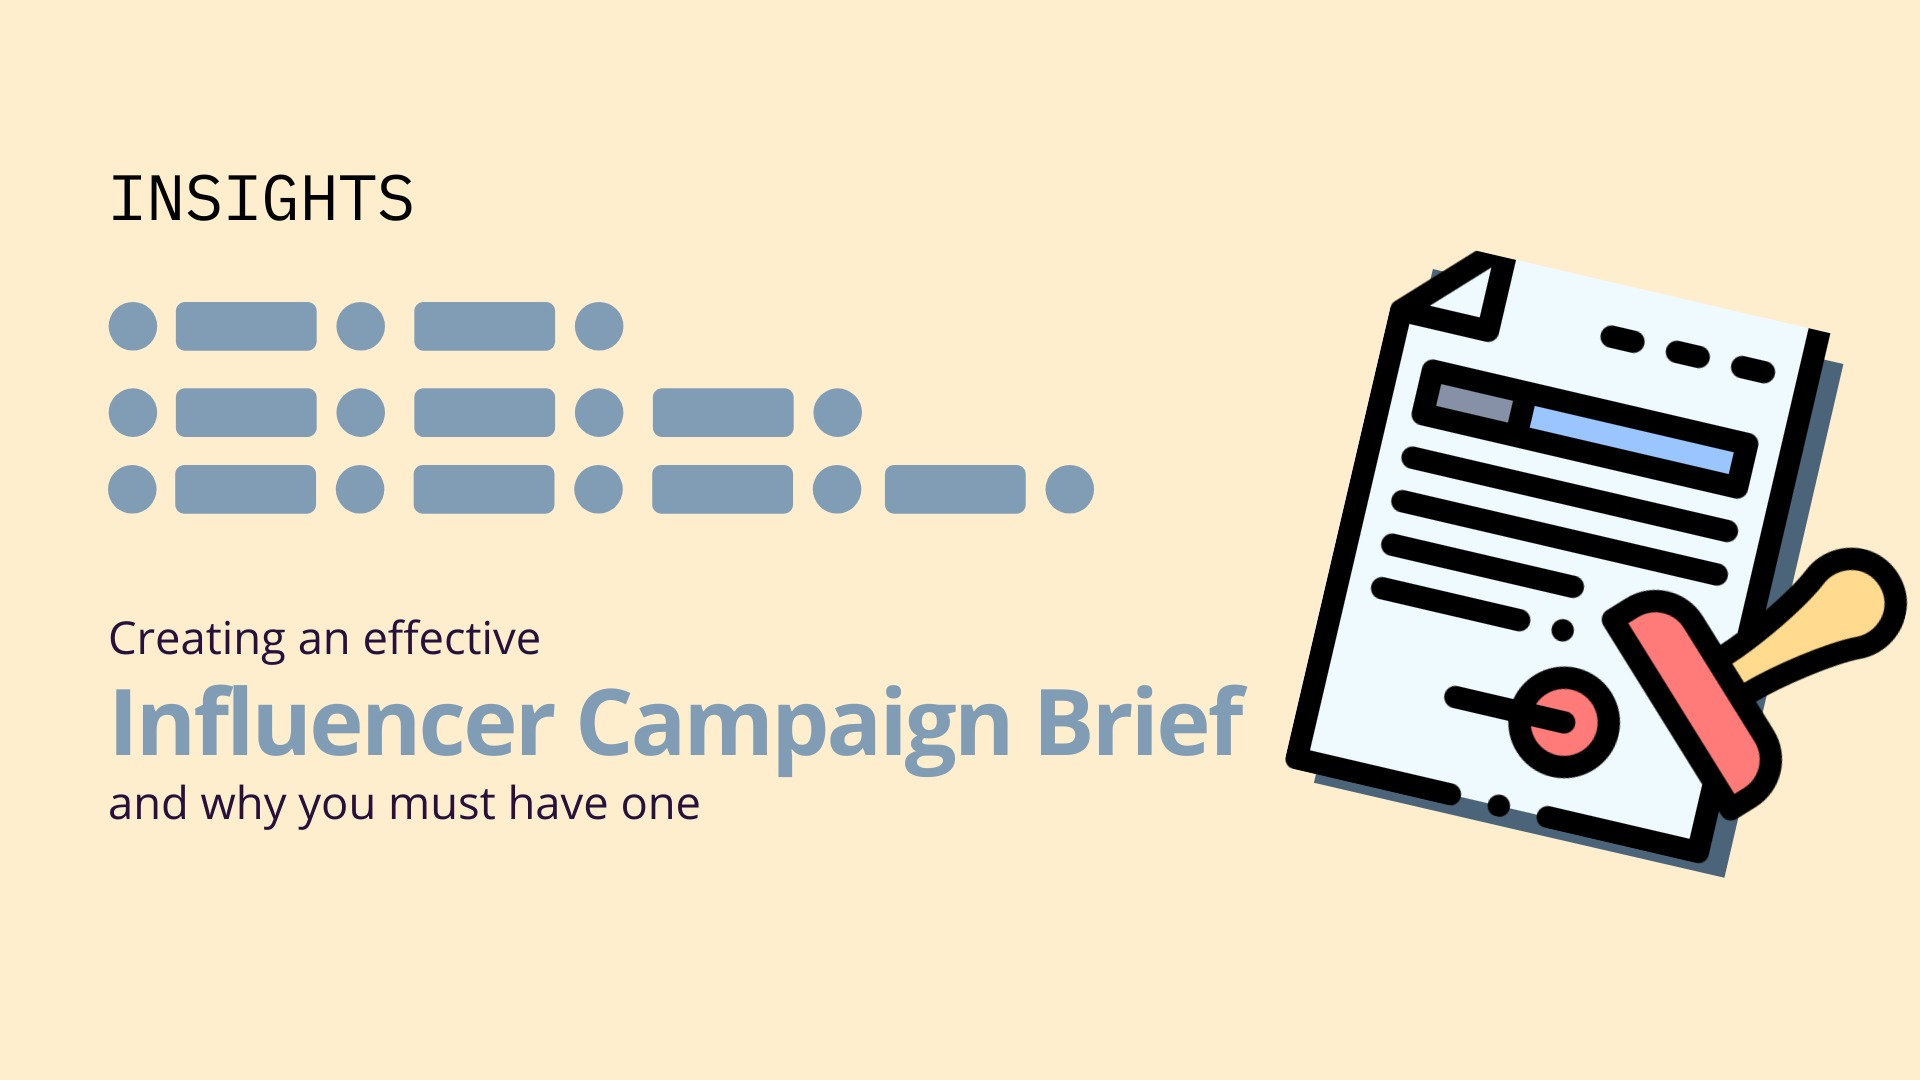 Creating An Effective Campaign Brief image